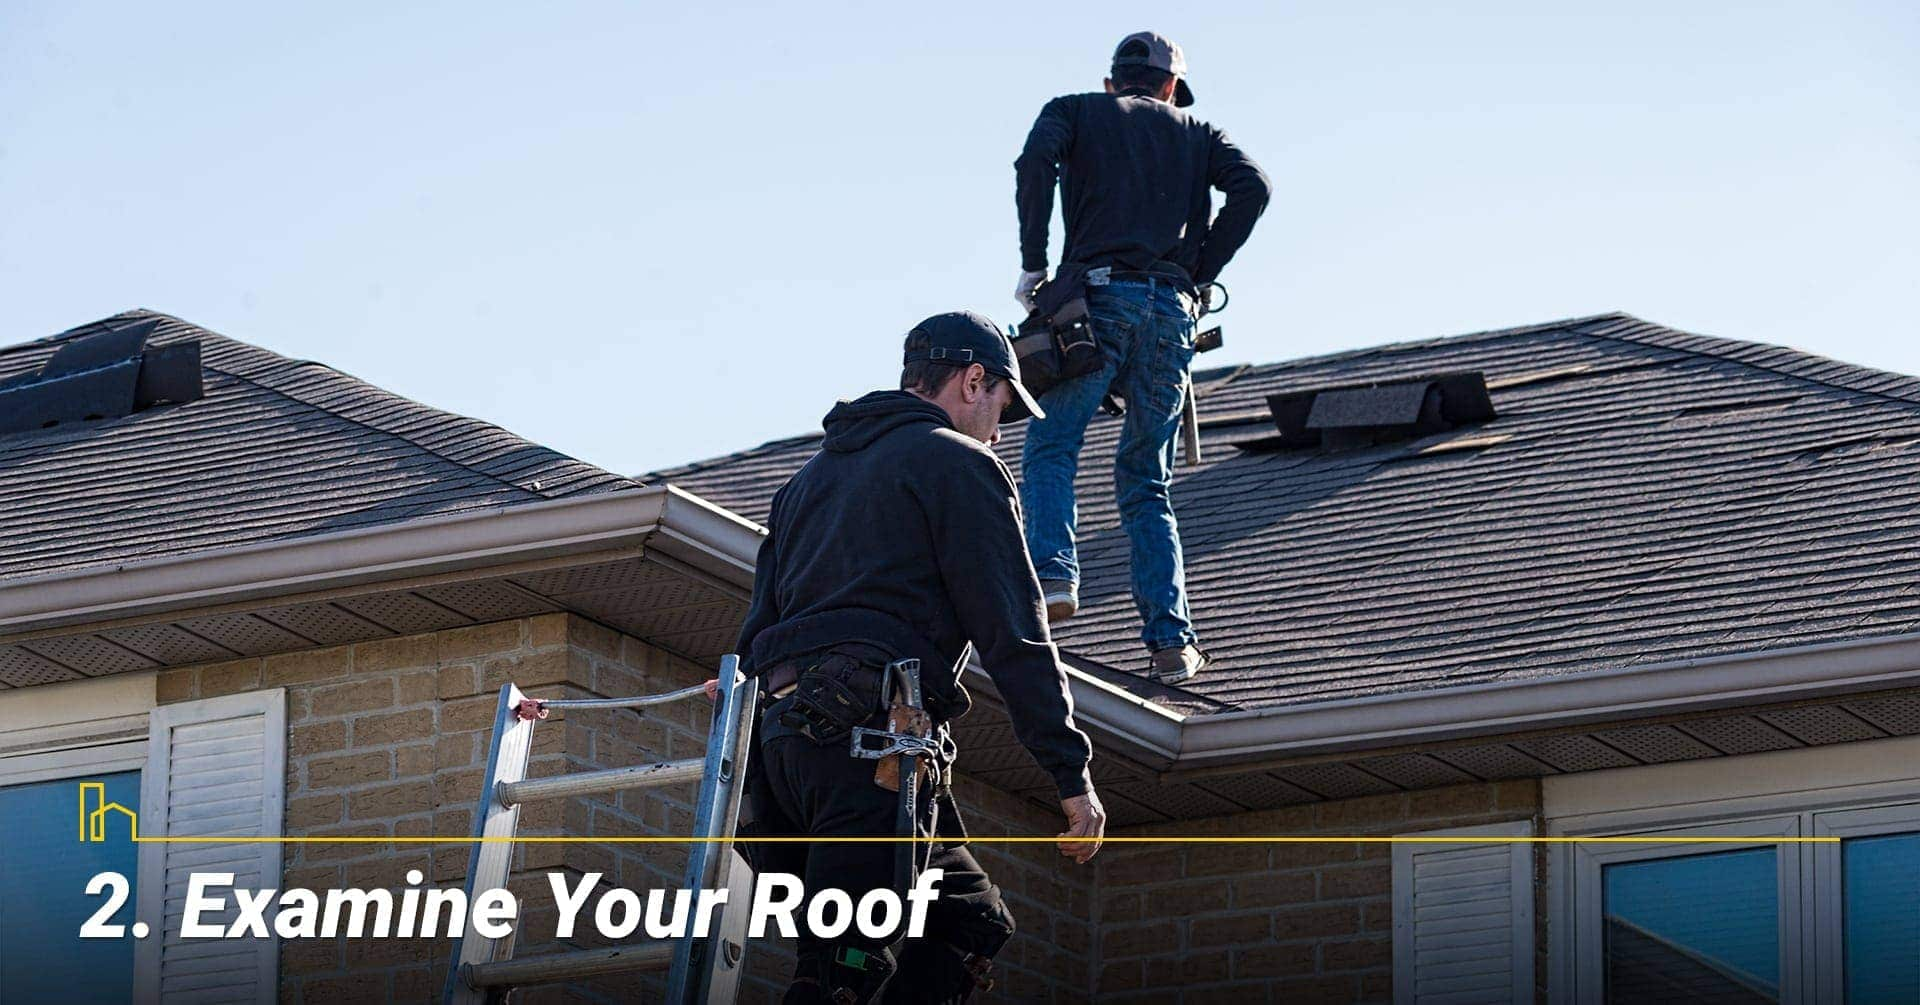 Examine Your Roof, review condition of the roof